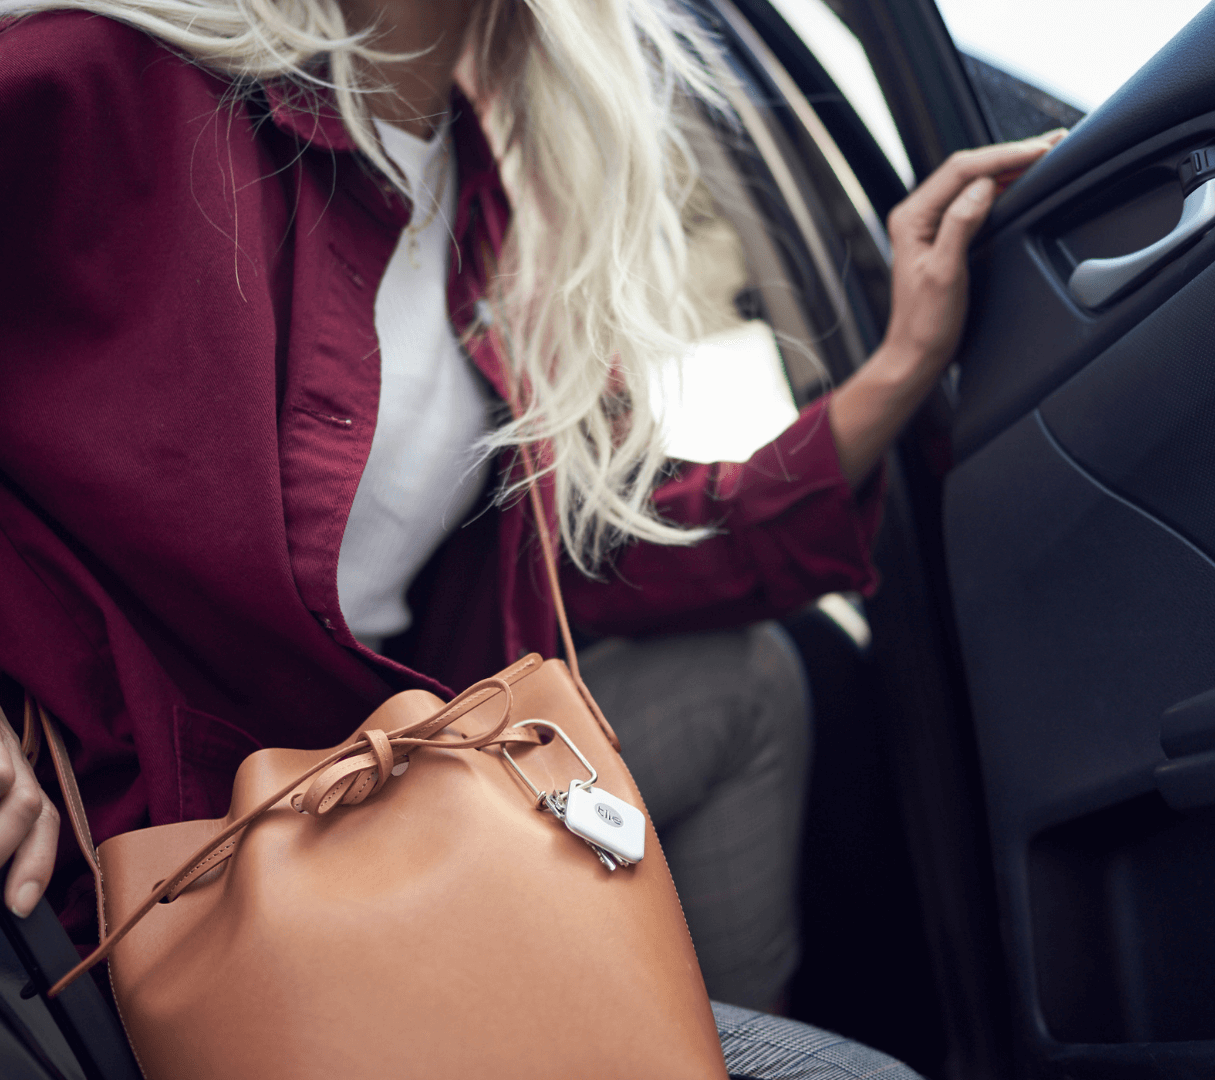 Tile's purse tracker helps you find your lost purse with your smartphone.